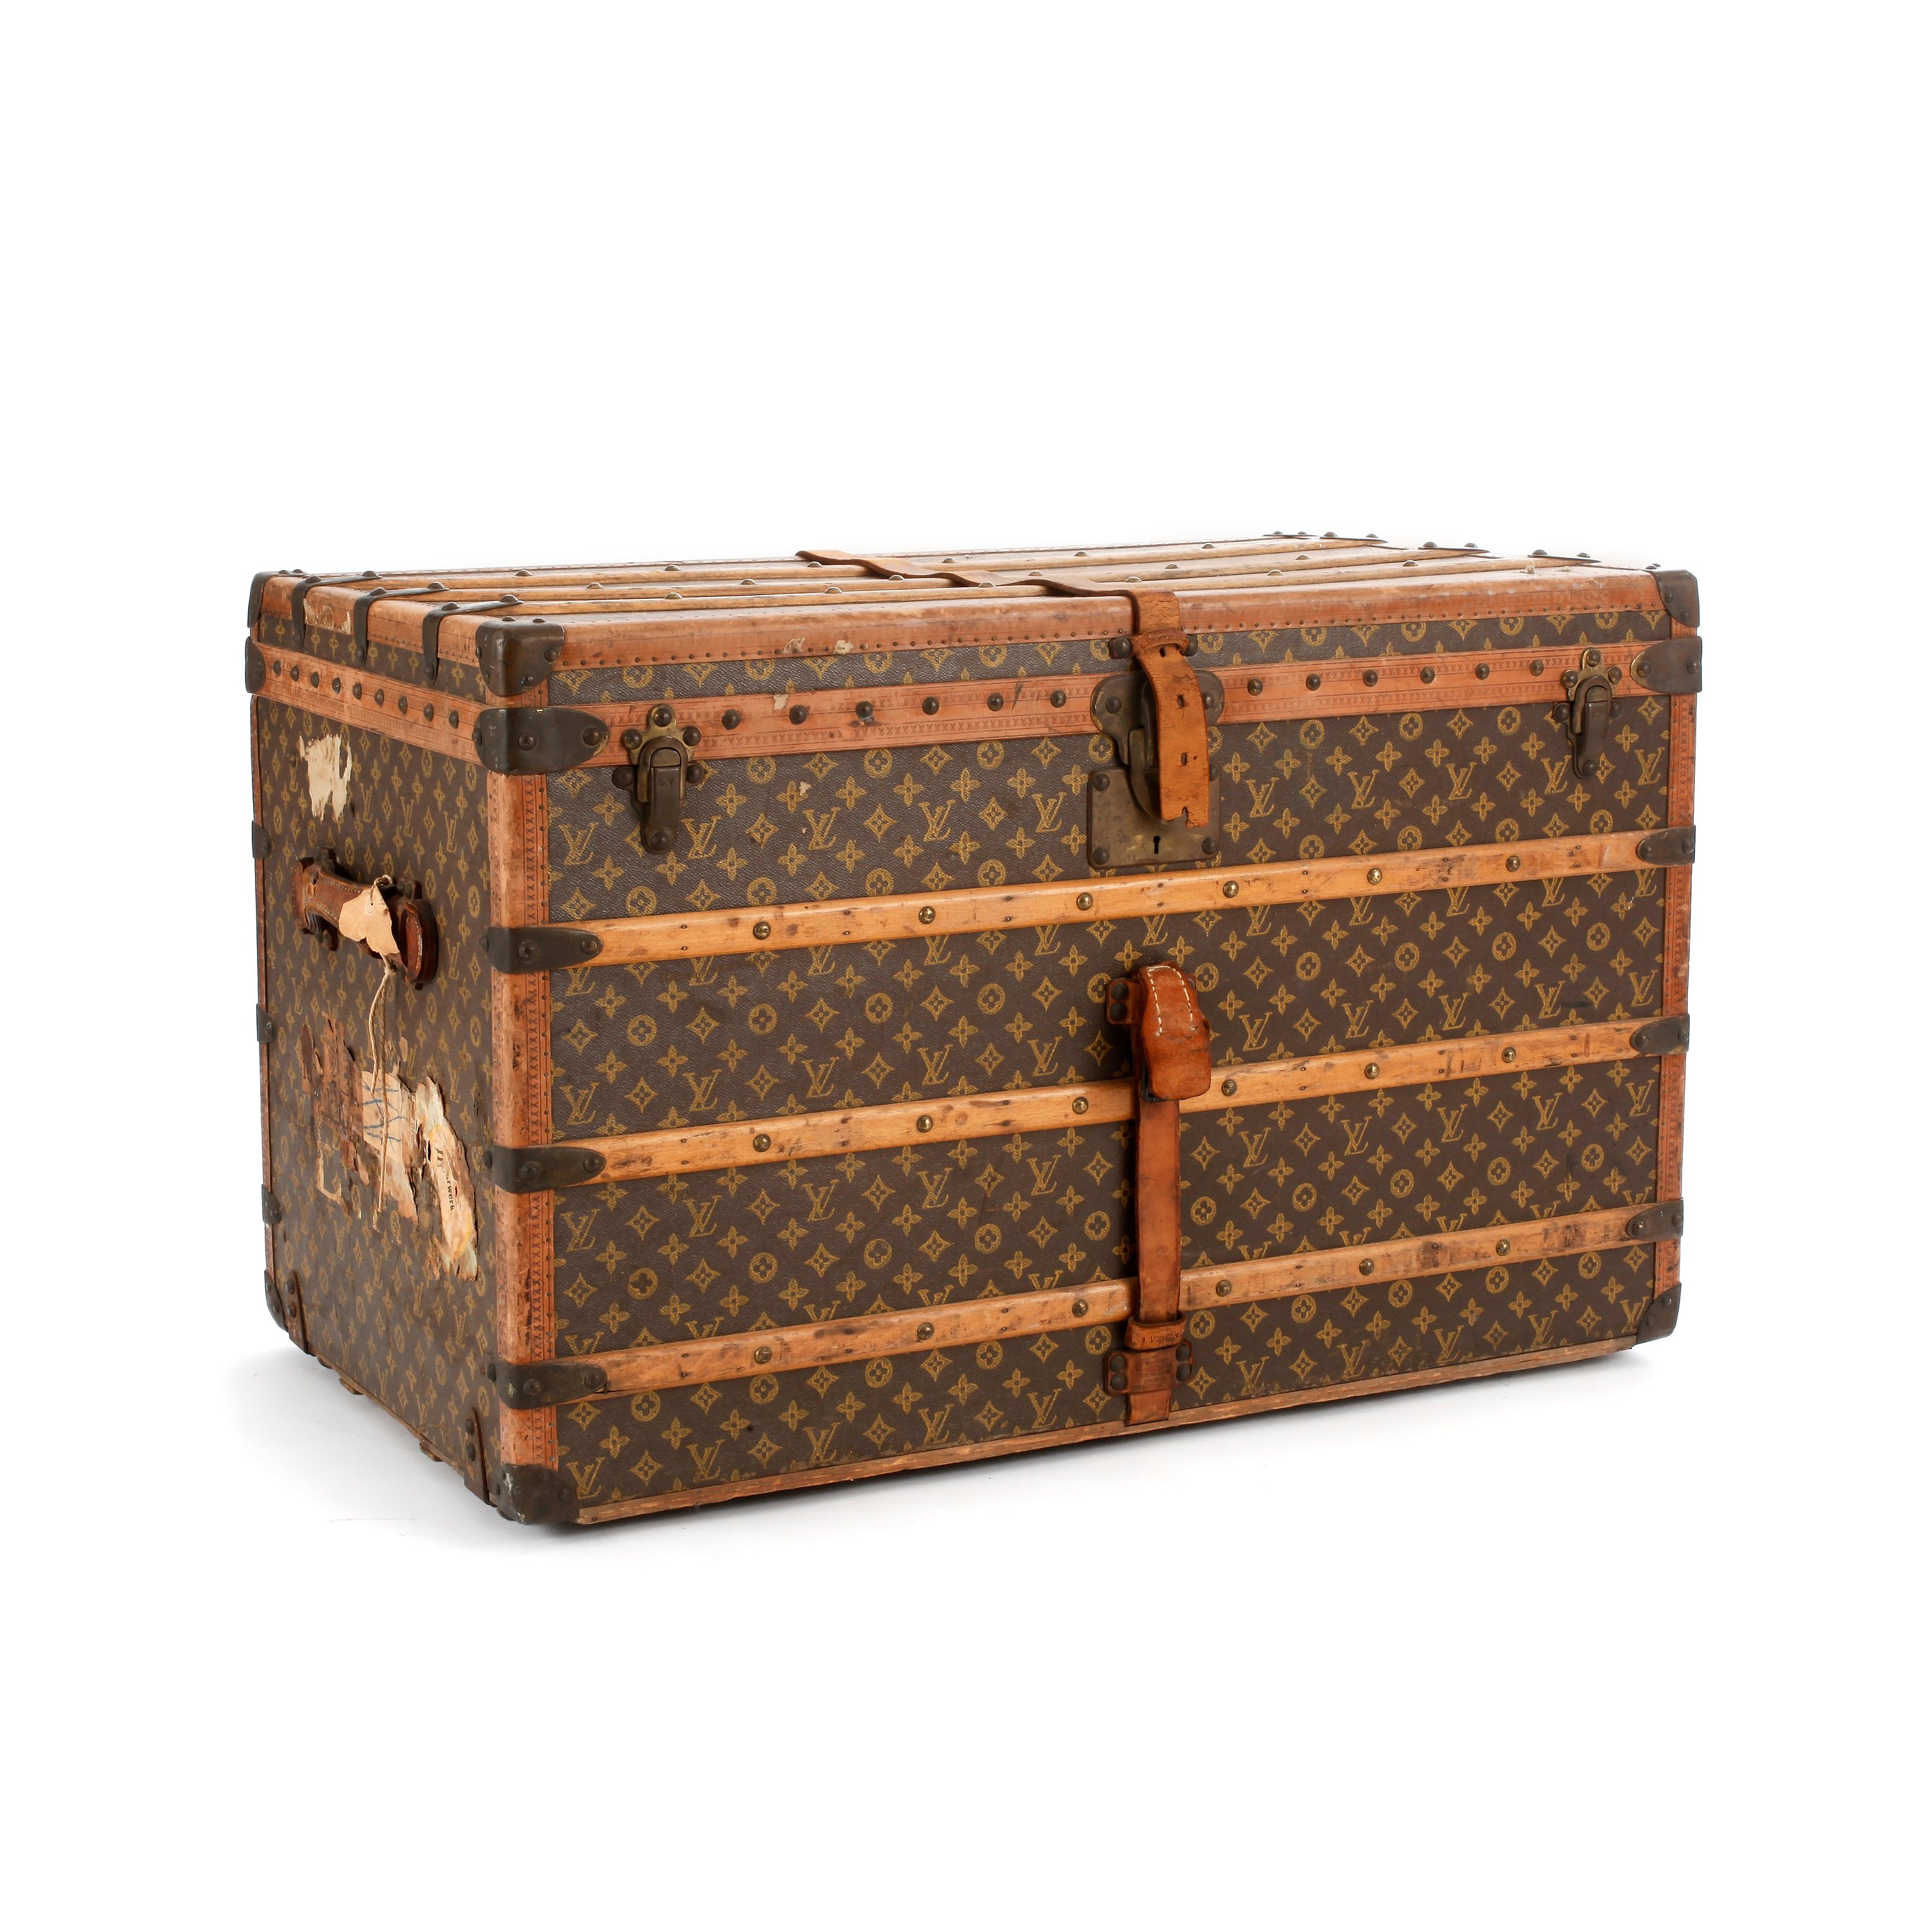 Fra mega LOUIS VUITTON, a Monogram canvas trunk, late 19th/early 20th PA-37